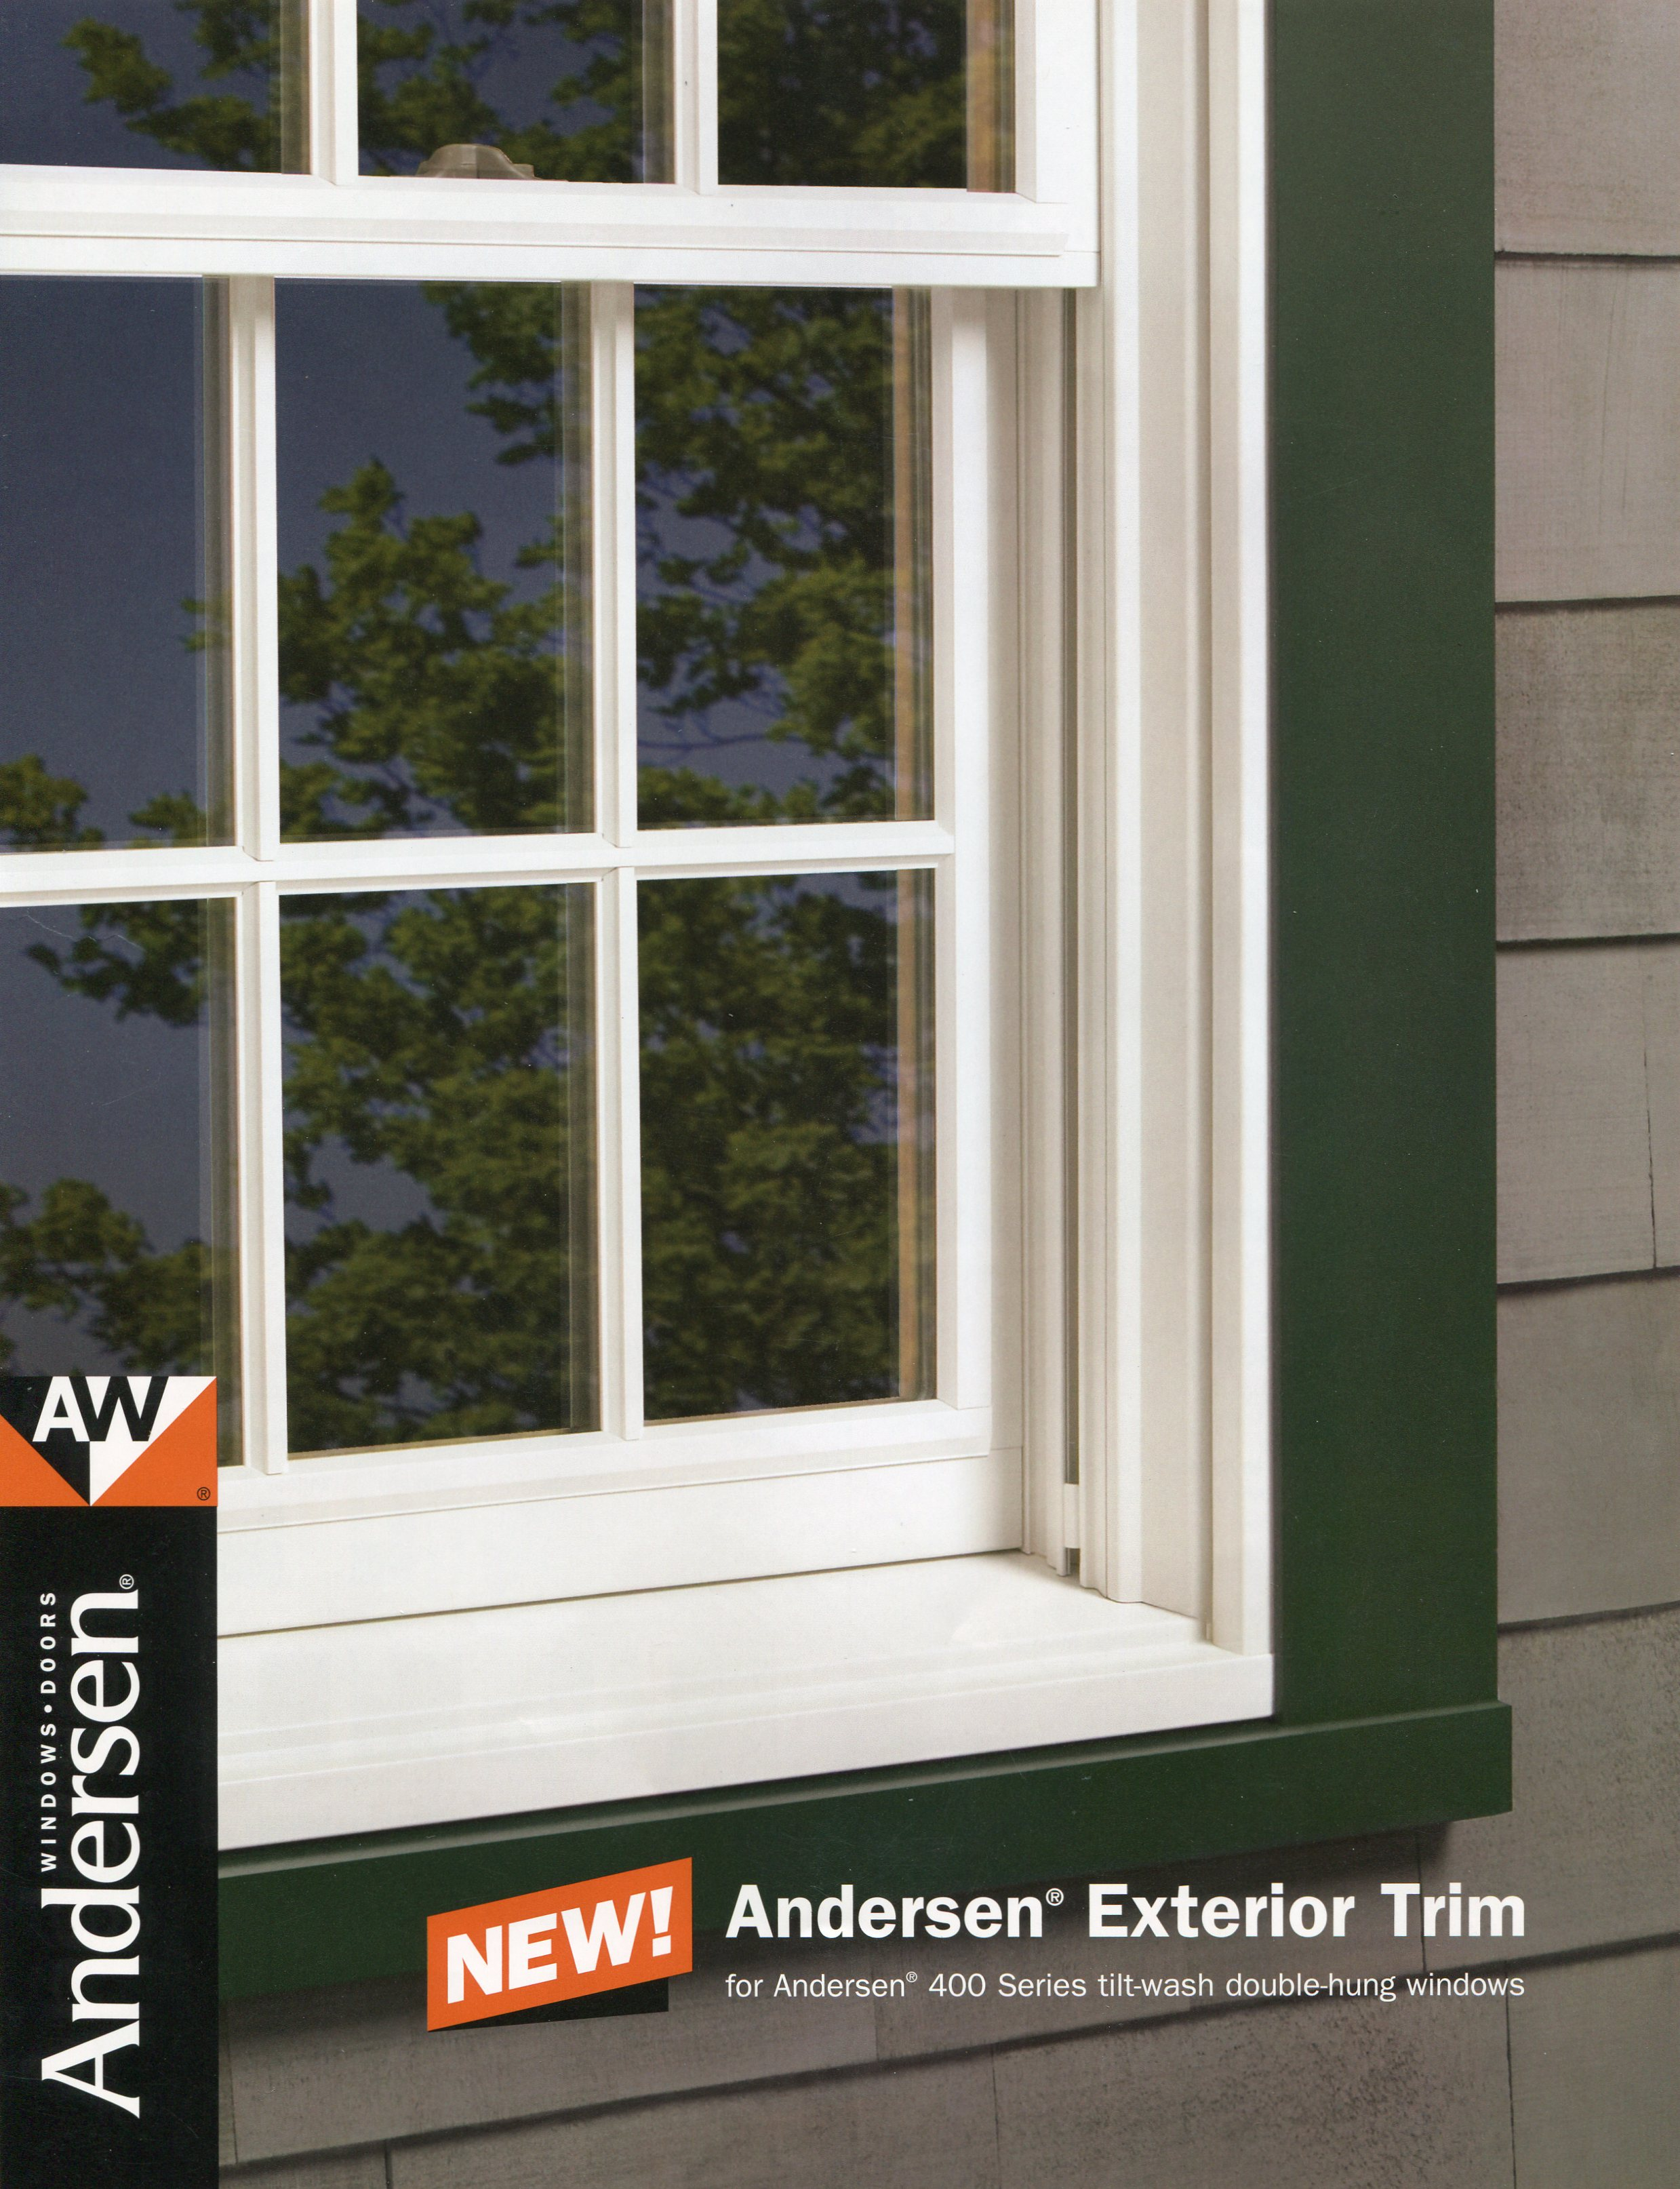 Andersen Replacement Window in MA Exterior Trim